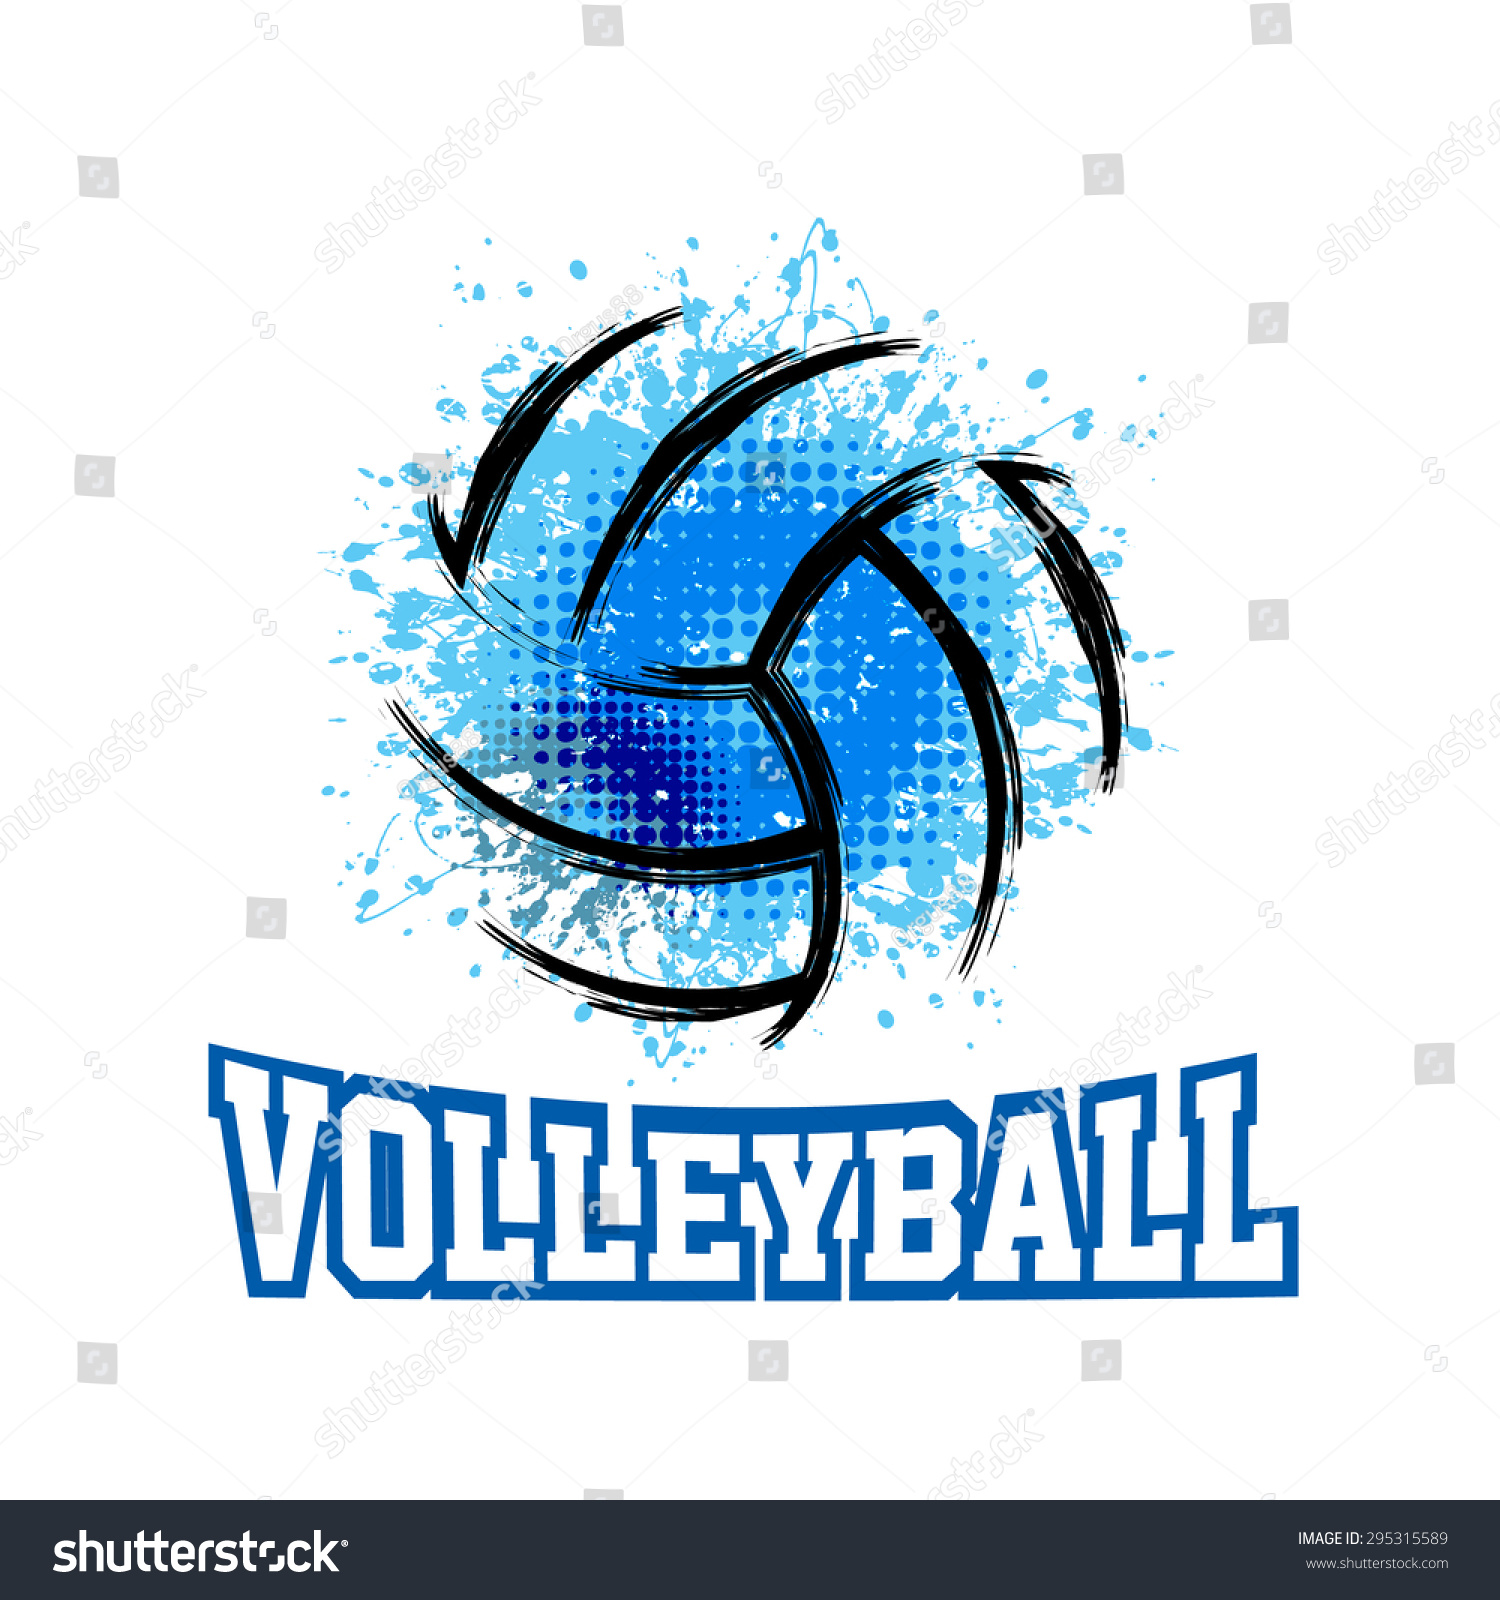 T shirt poster design - Vector Grunge Volleyball T Shirt Poster Banner Backdrops Design